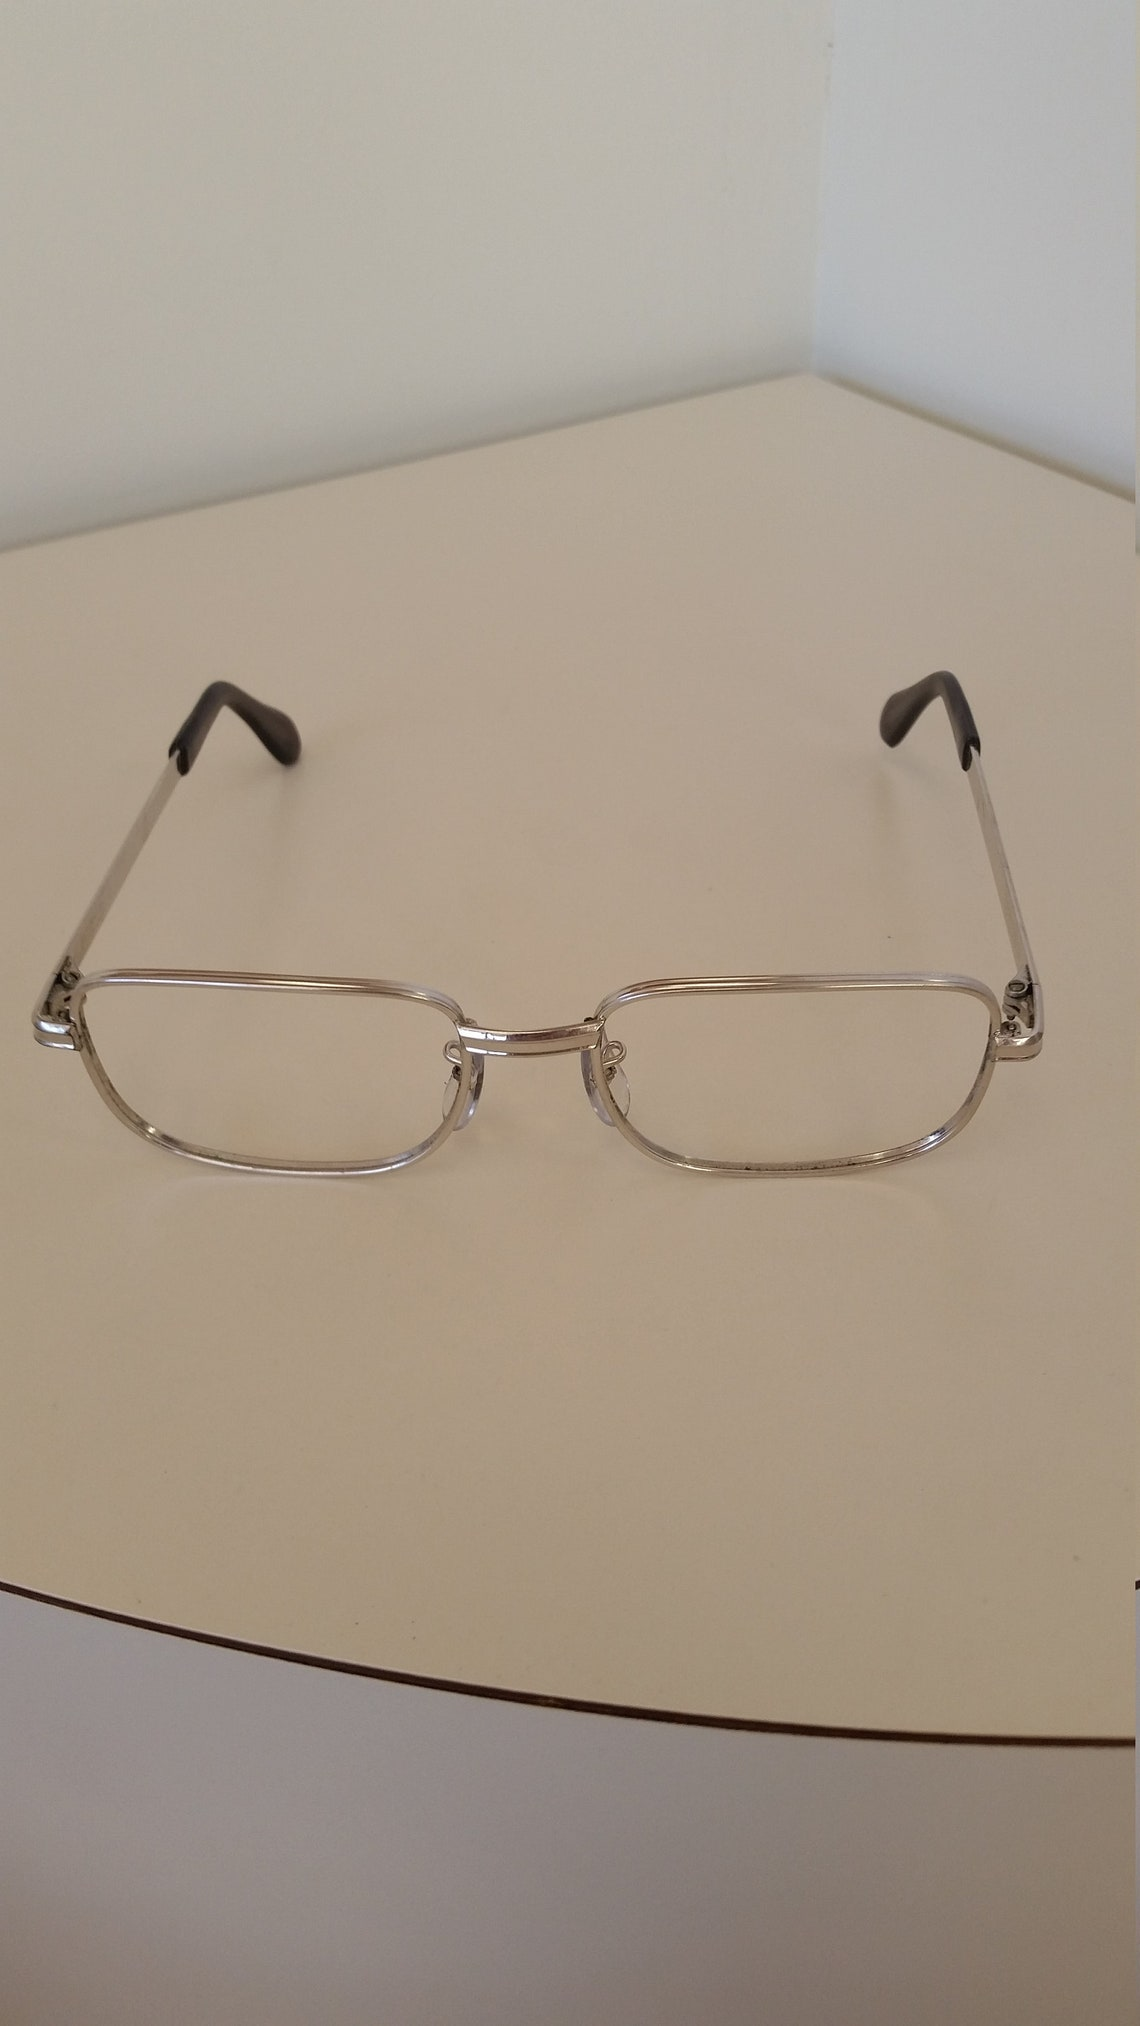 1960s Universal 10 KGF Eyeglasses Frame; Silver Metal Square; Rx-able, No Lenses; Excellent Condition